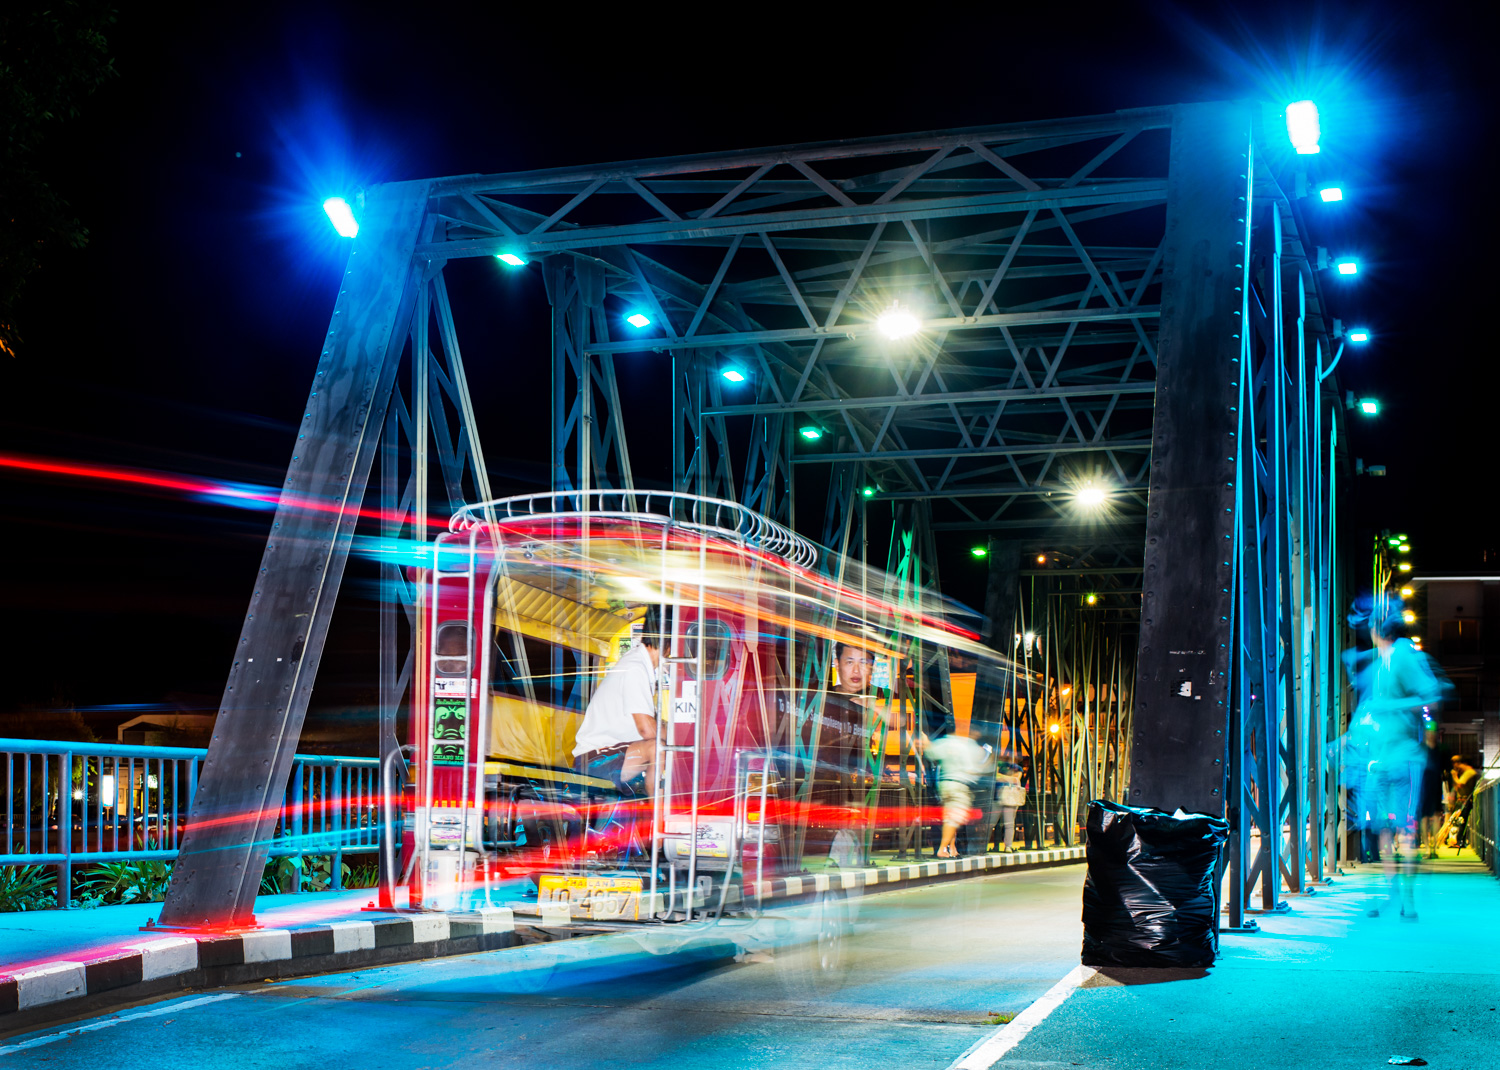 Night Photography In Chiang Mai, Thailand at the Iron Bridge -  7 Steps to Find Inspiration so You Can Create Phenomenal Photographs